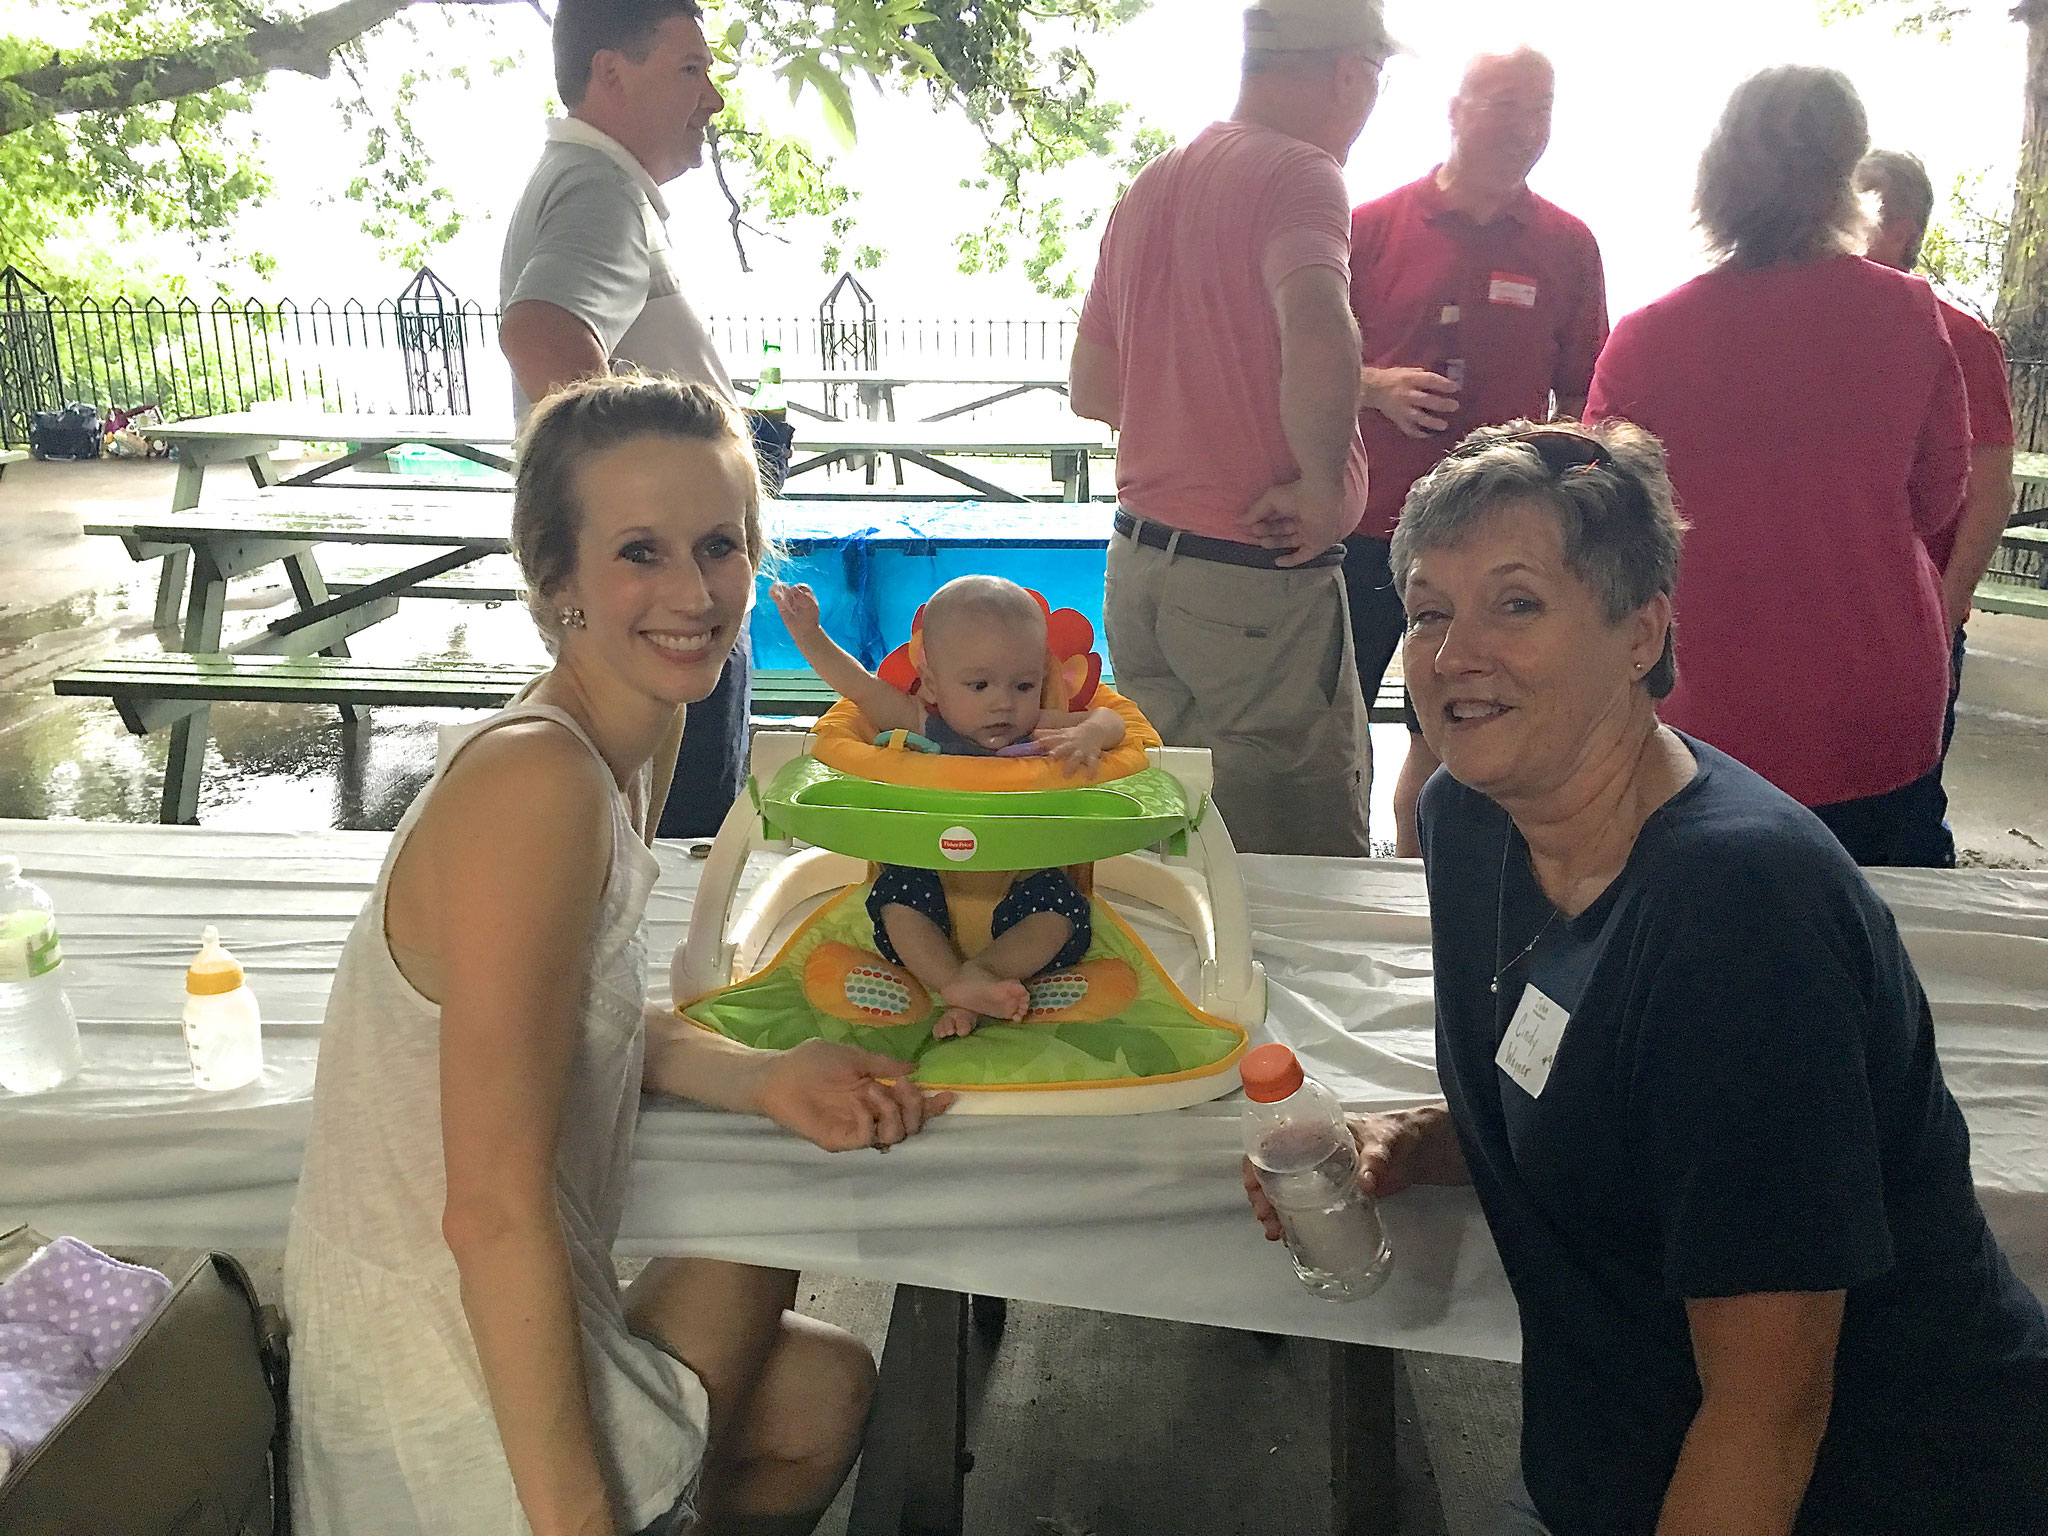 Emily Wagner with Cadence Wagner and Cindy Wagner